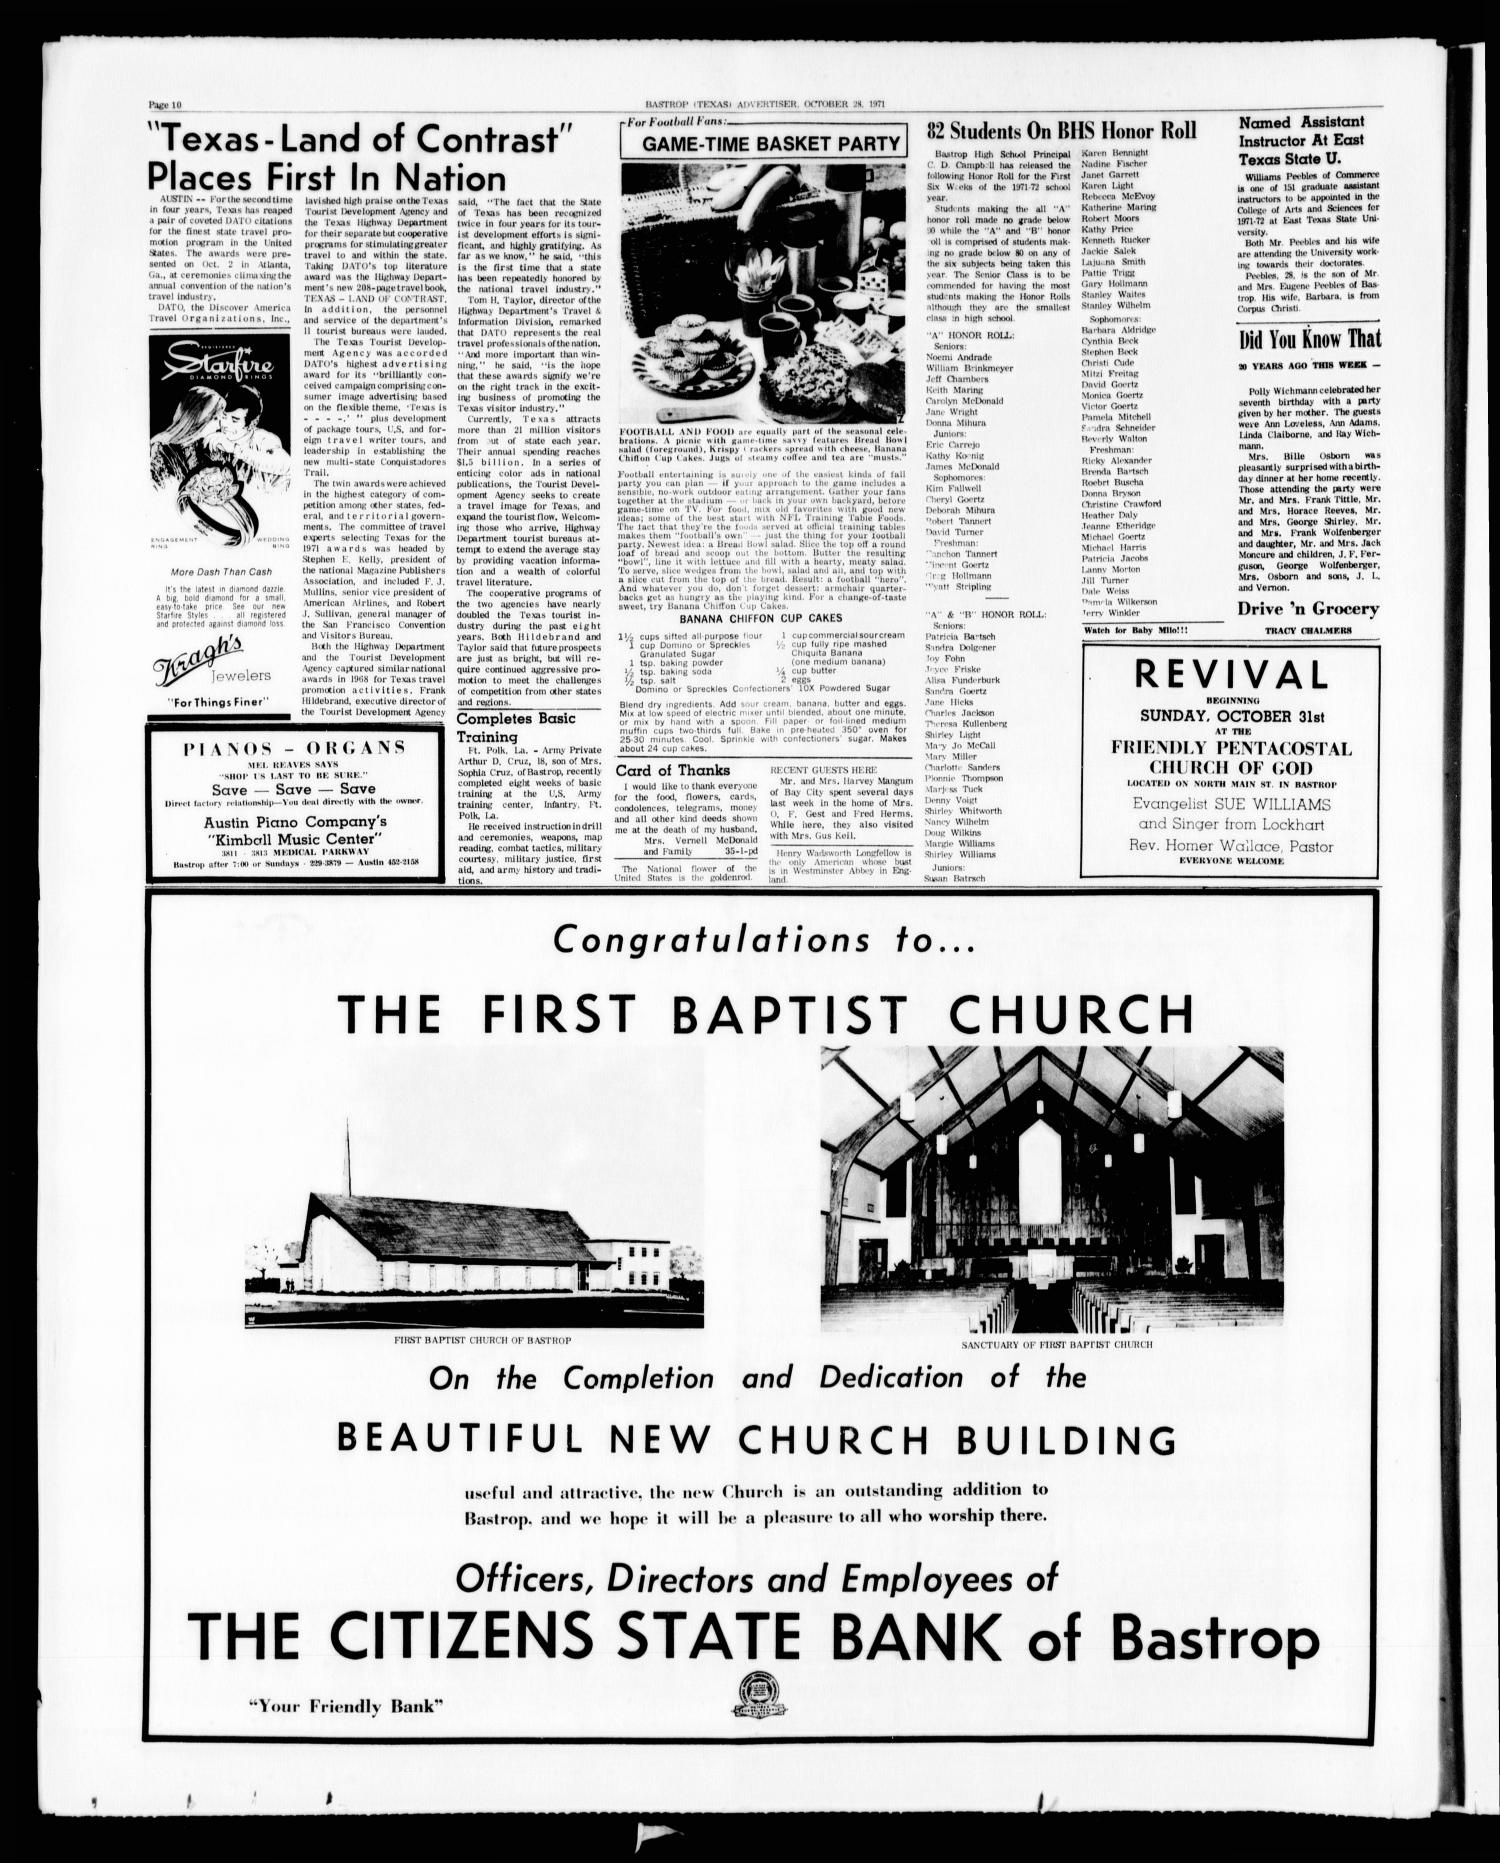 Bastrop Advertiser and Bastrop County News (Bastrop, Tex.), Vol. [118], No. 35, Ed. 1 Thursday, October 28, 1971                                                                                                      [Sequence #]: 10 of 12